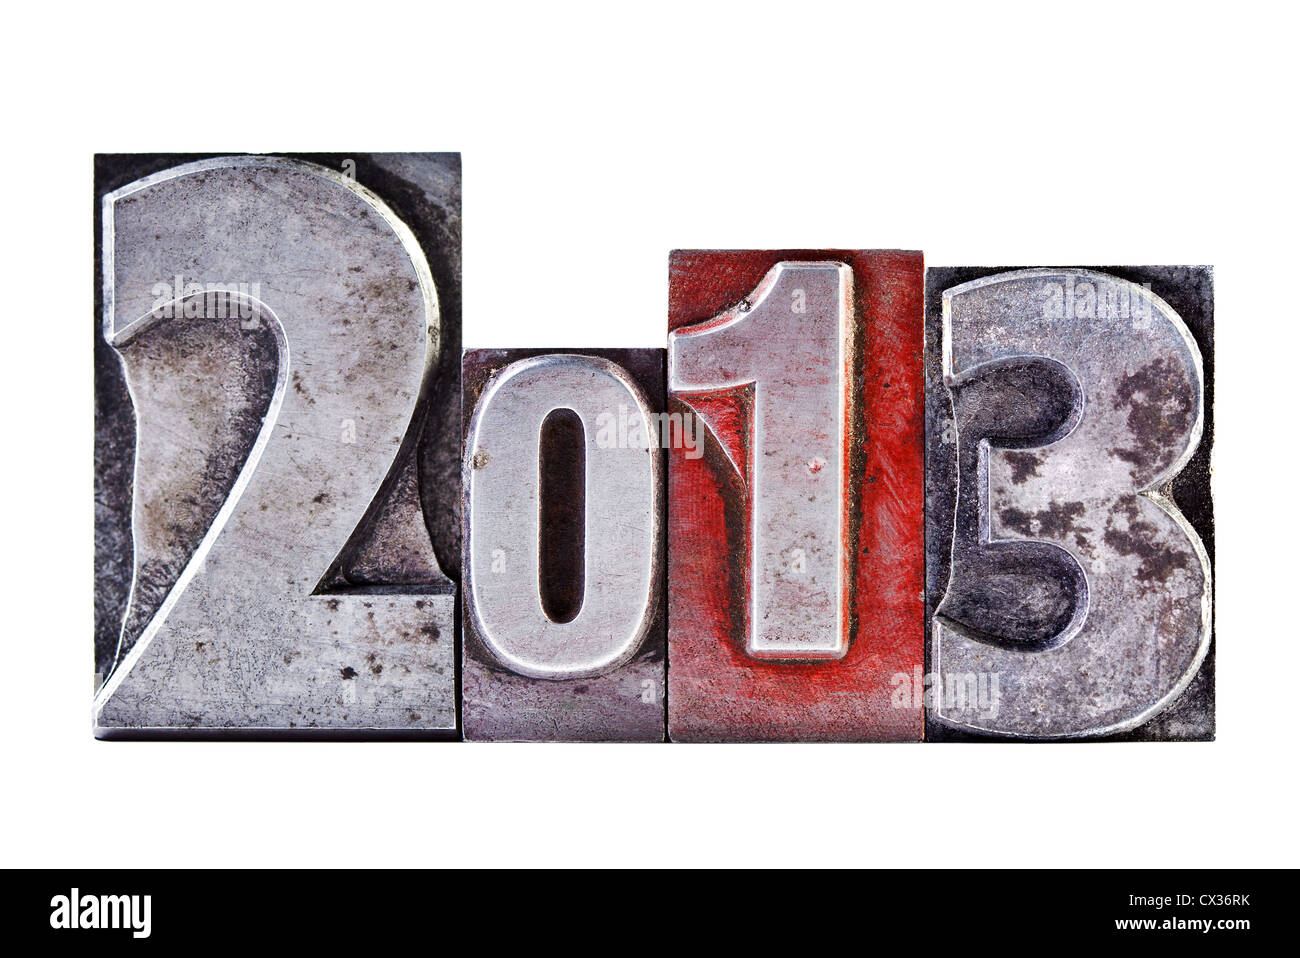 The numbers or date 2013 in old worn letterpress, isolated on a white background. - Stock Image